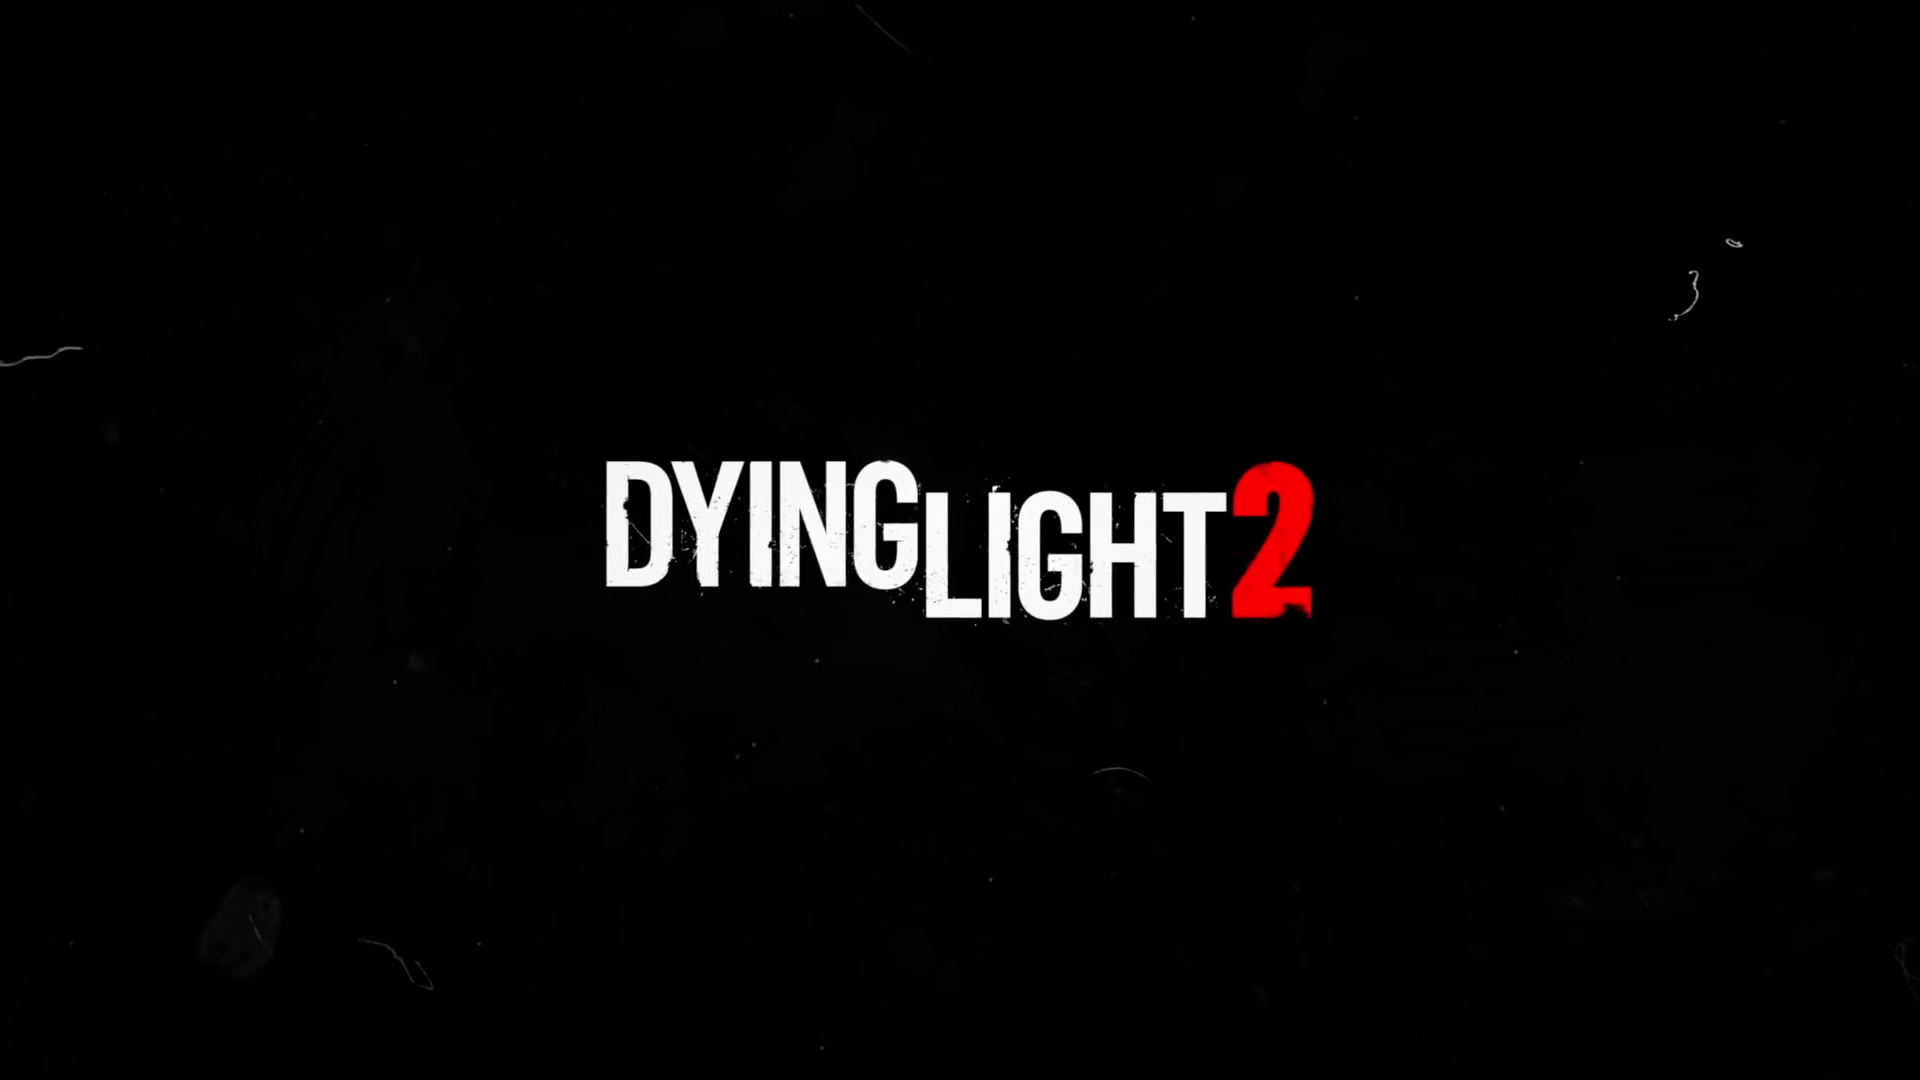 Dying Light 2 - Ask Me Anything (Episode 2)